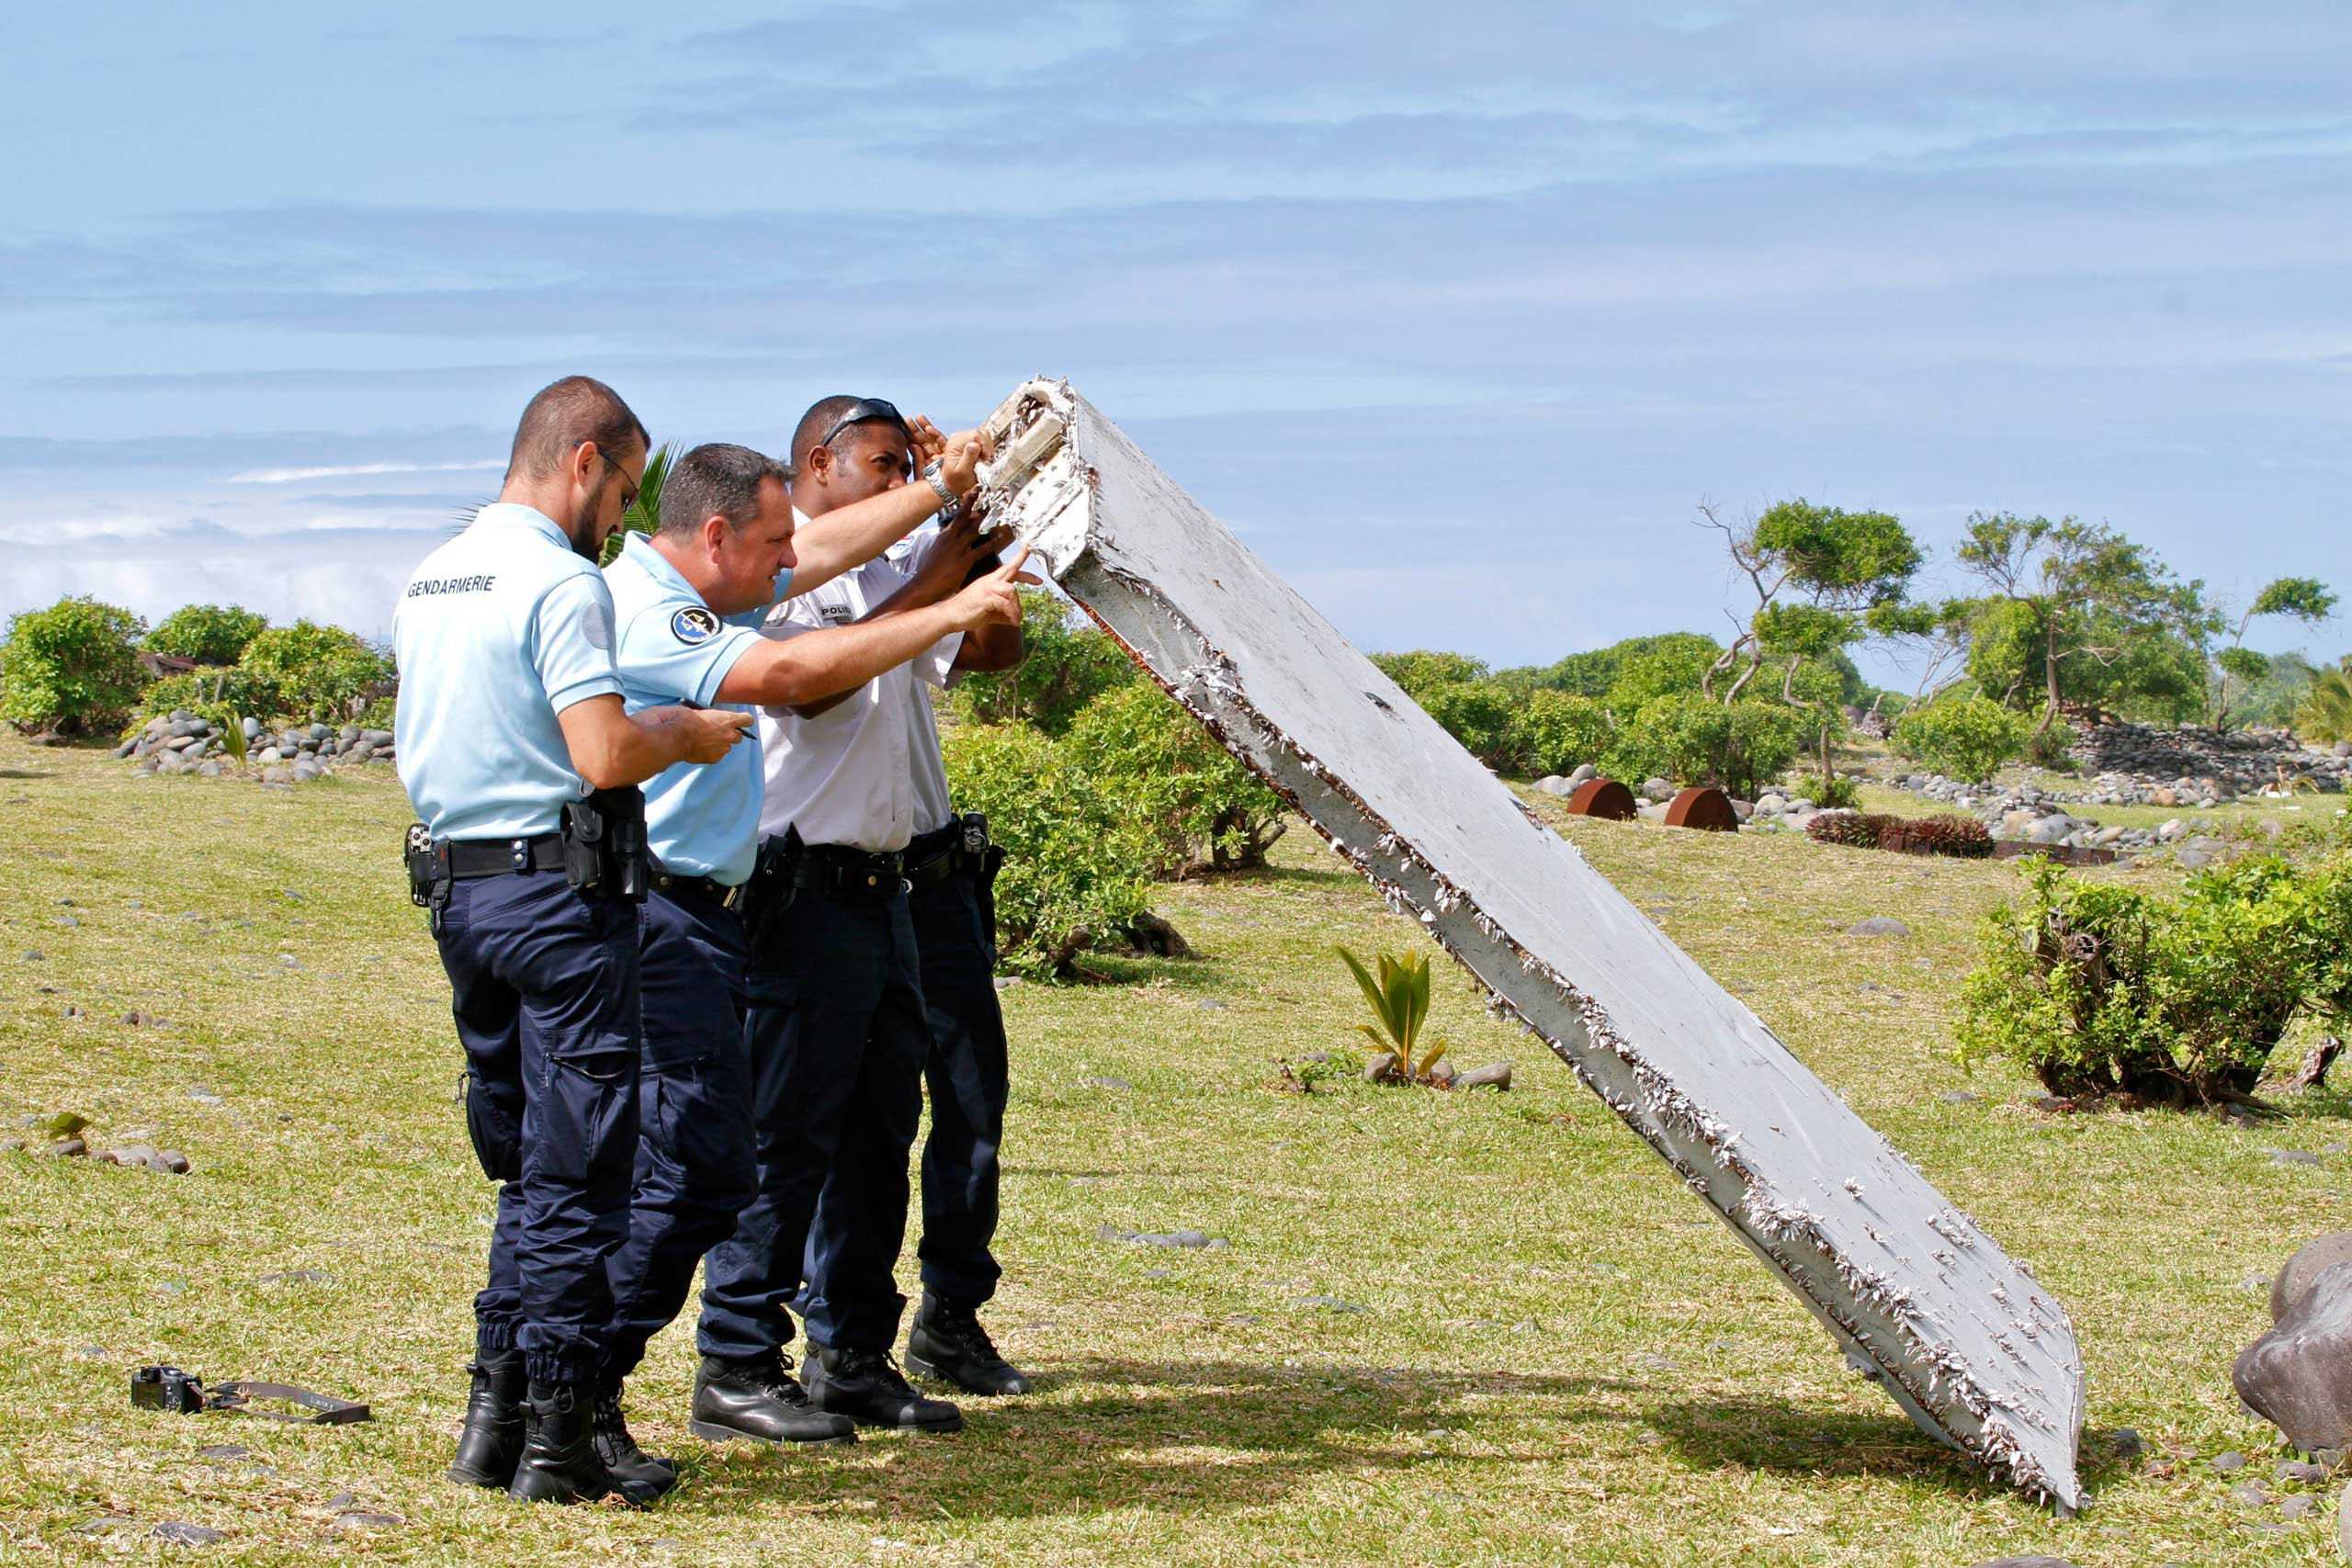 French police officers inspect a piece of debris from a plane in Saint-Andre, Reunion Island, on July 29, 2015.